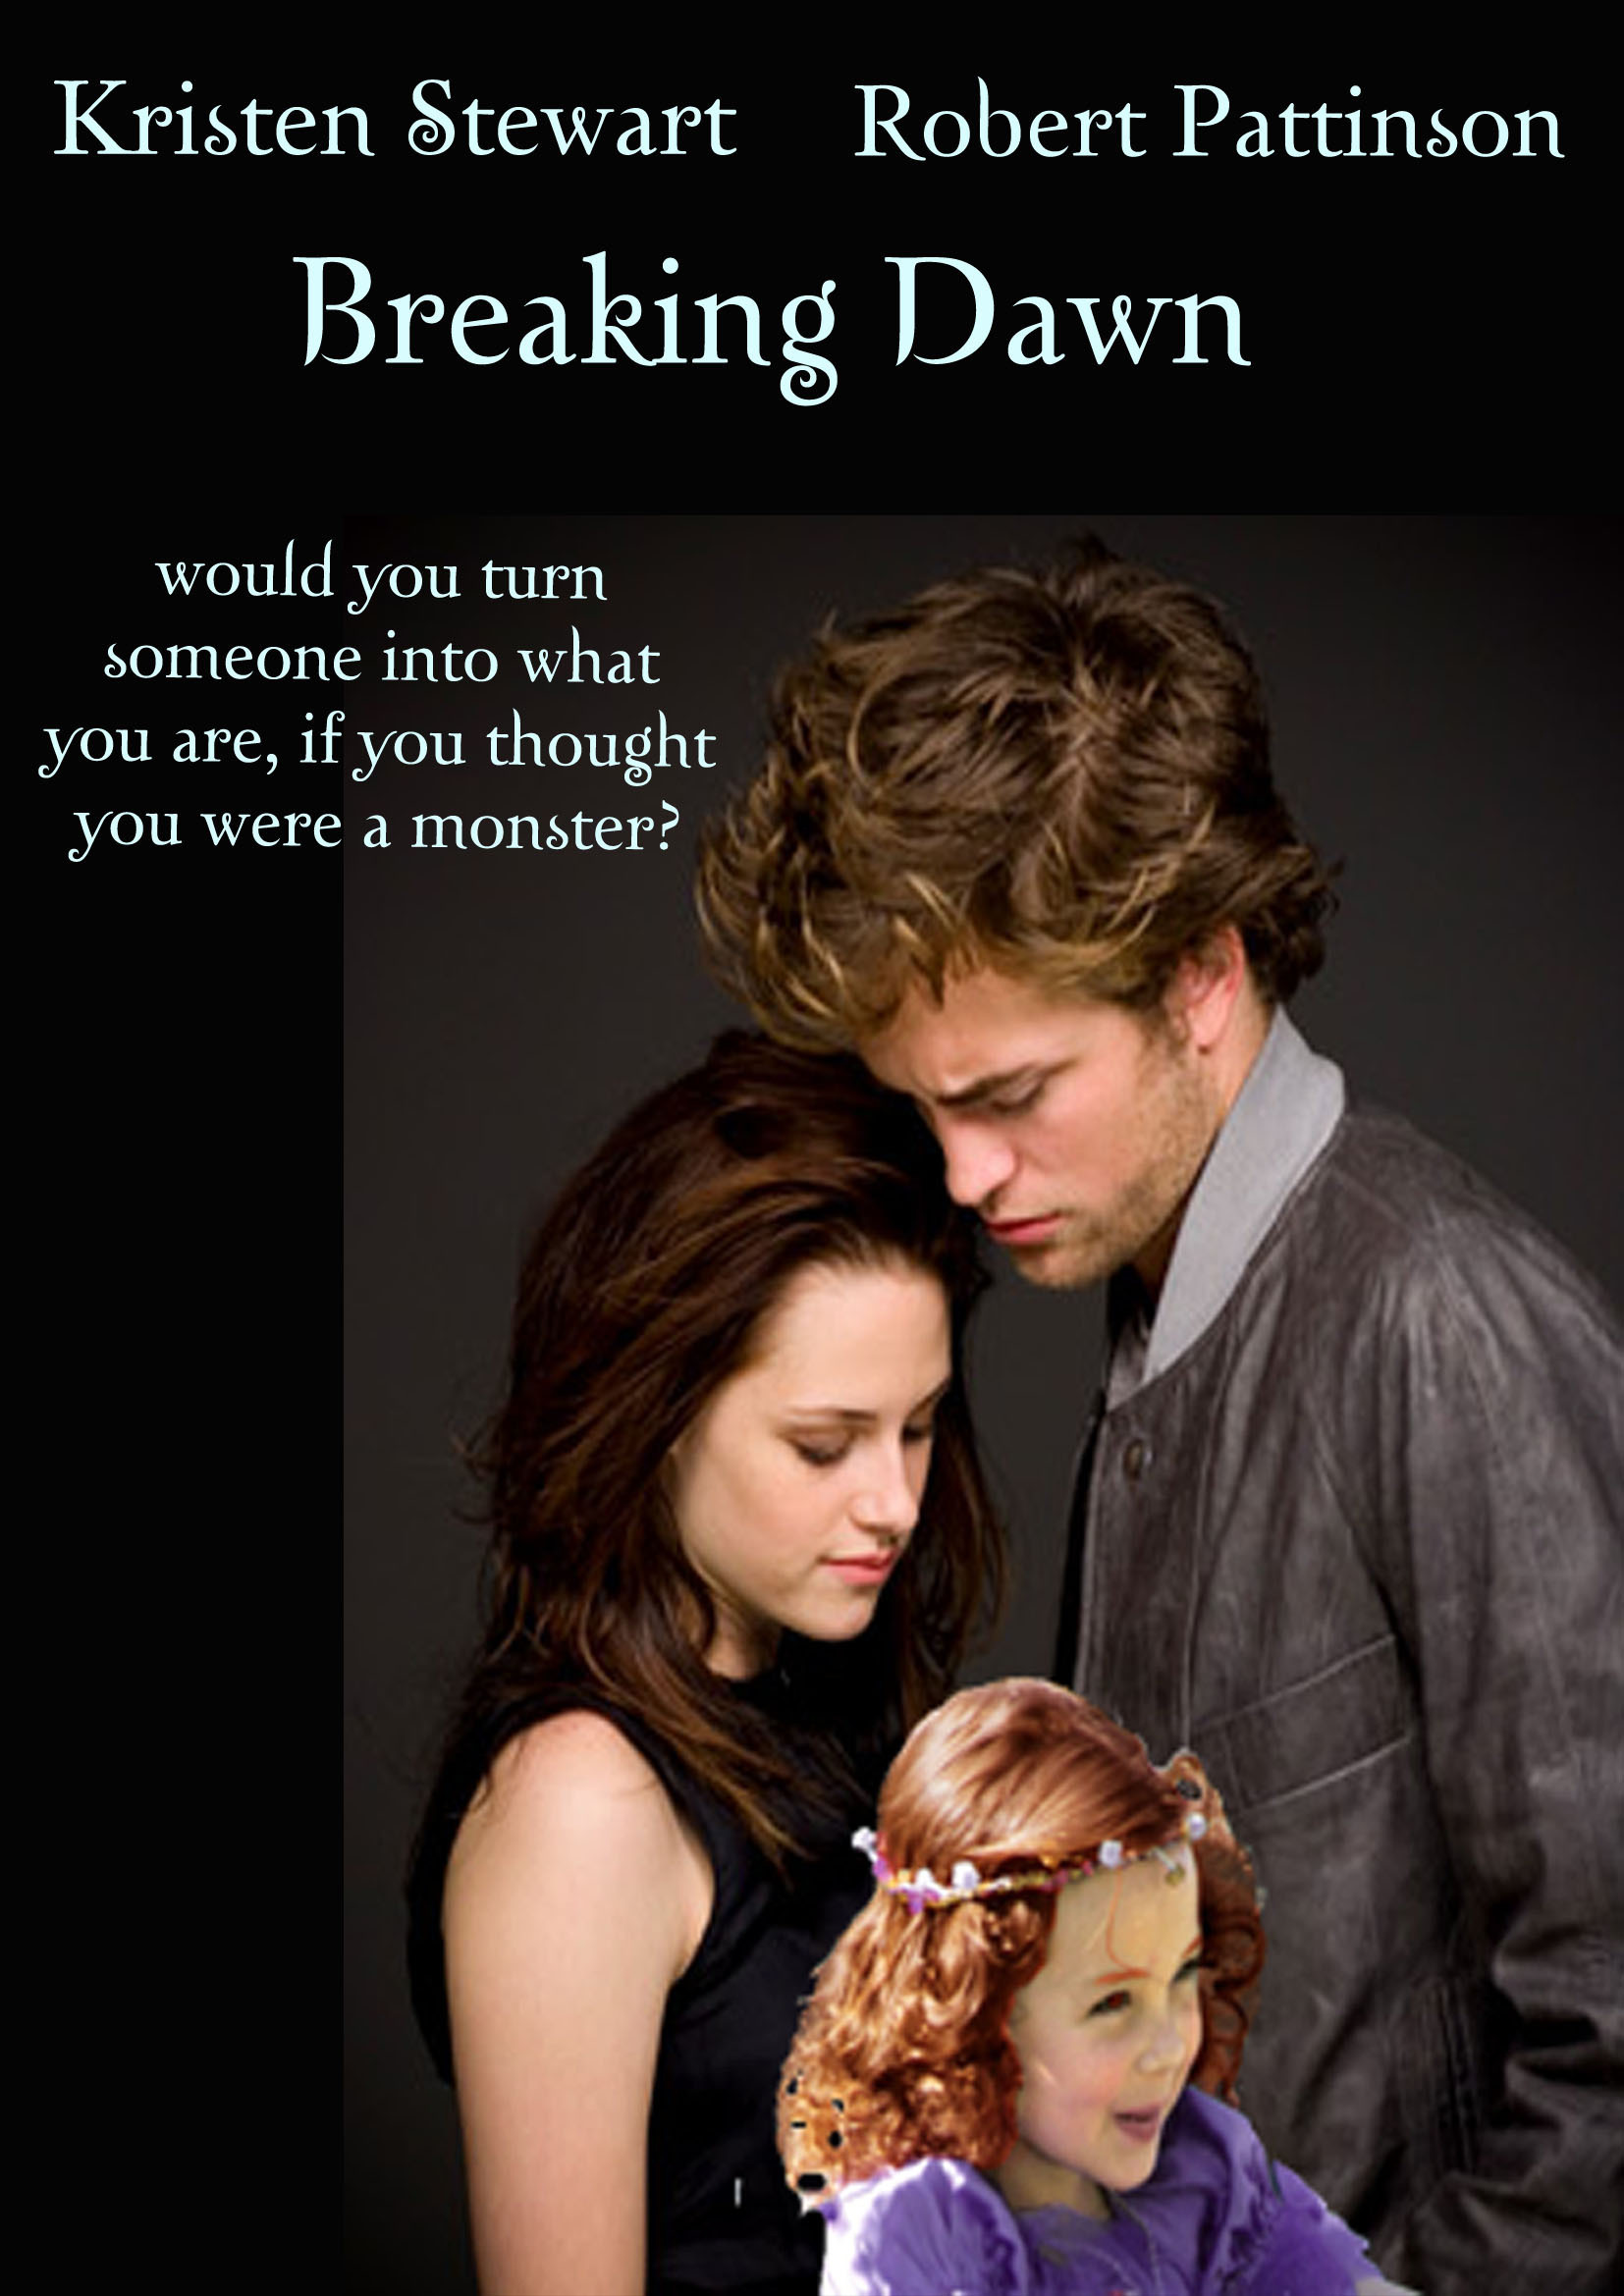 http://images2.fanpop.com/image/photos/9200000/Breaking-Dawn-Movie-Cover-breaking-dawn-the-movie-9220113-1654-2339.jpg